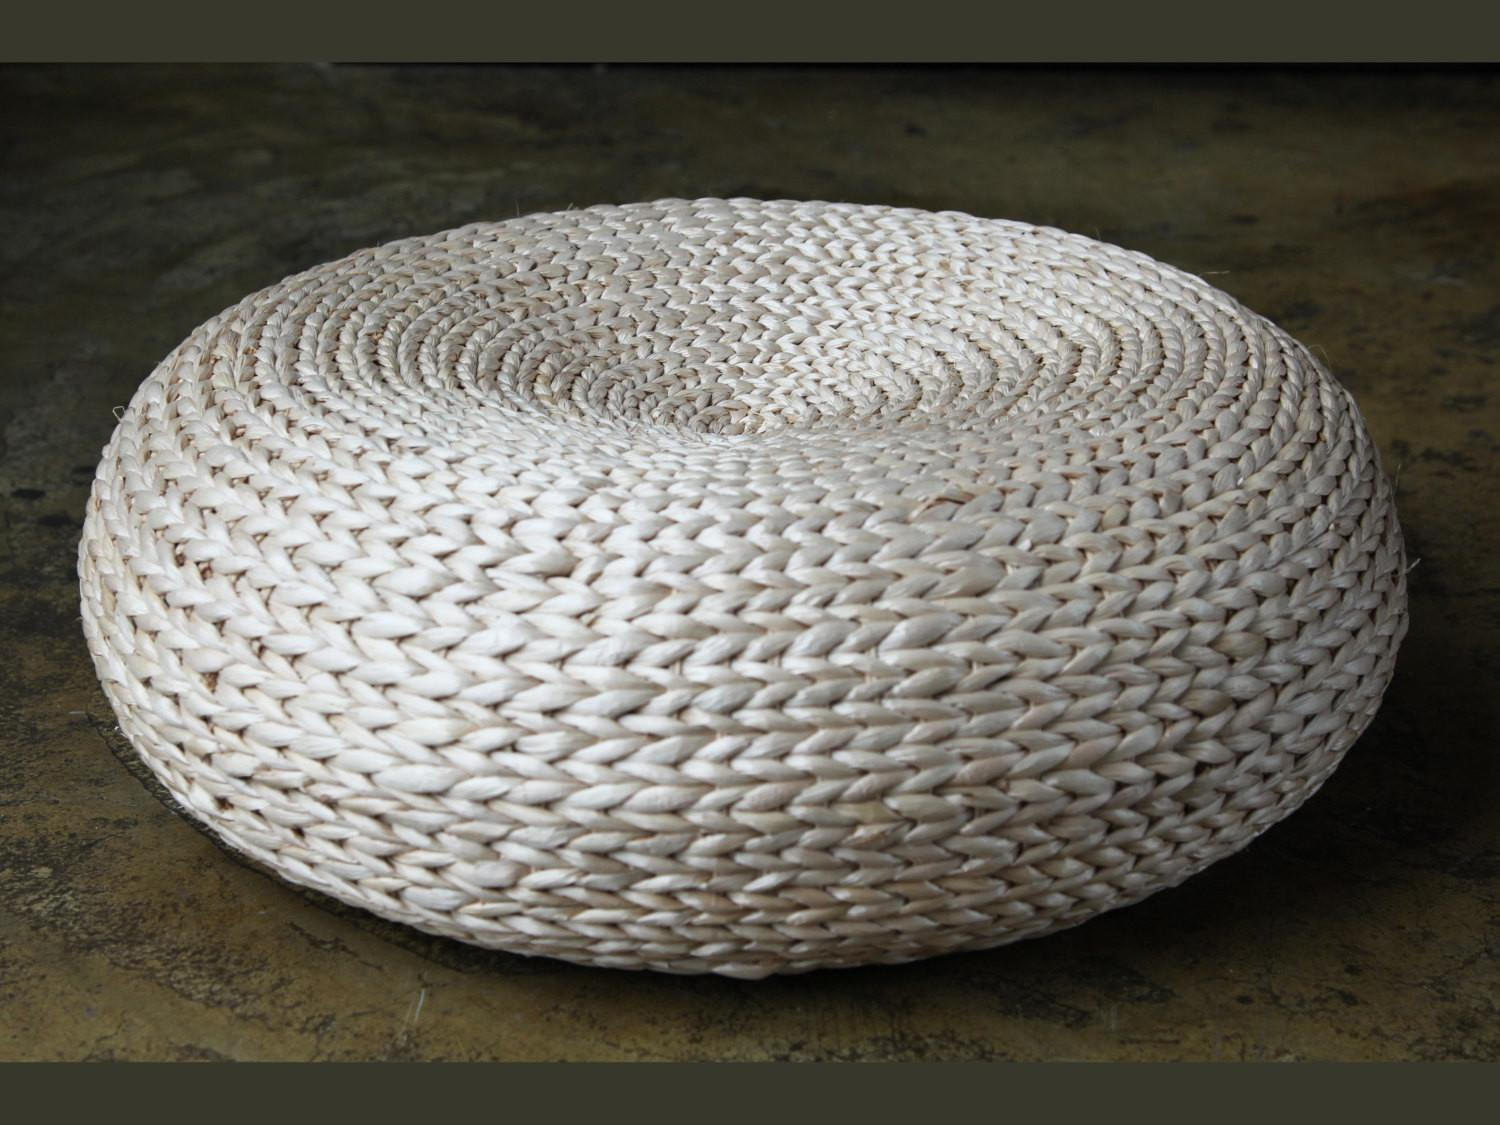 Round Rustic Floor Cushions Pouf Straw